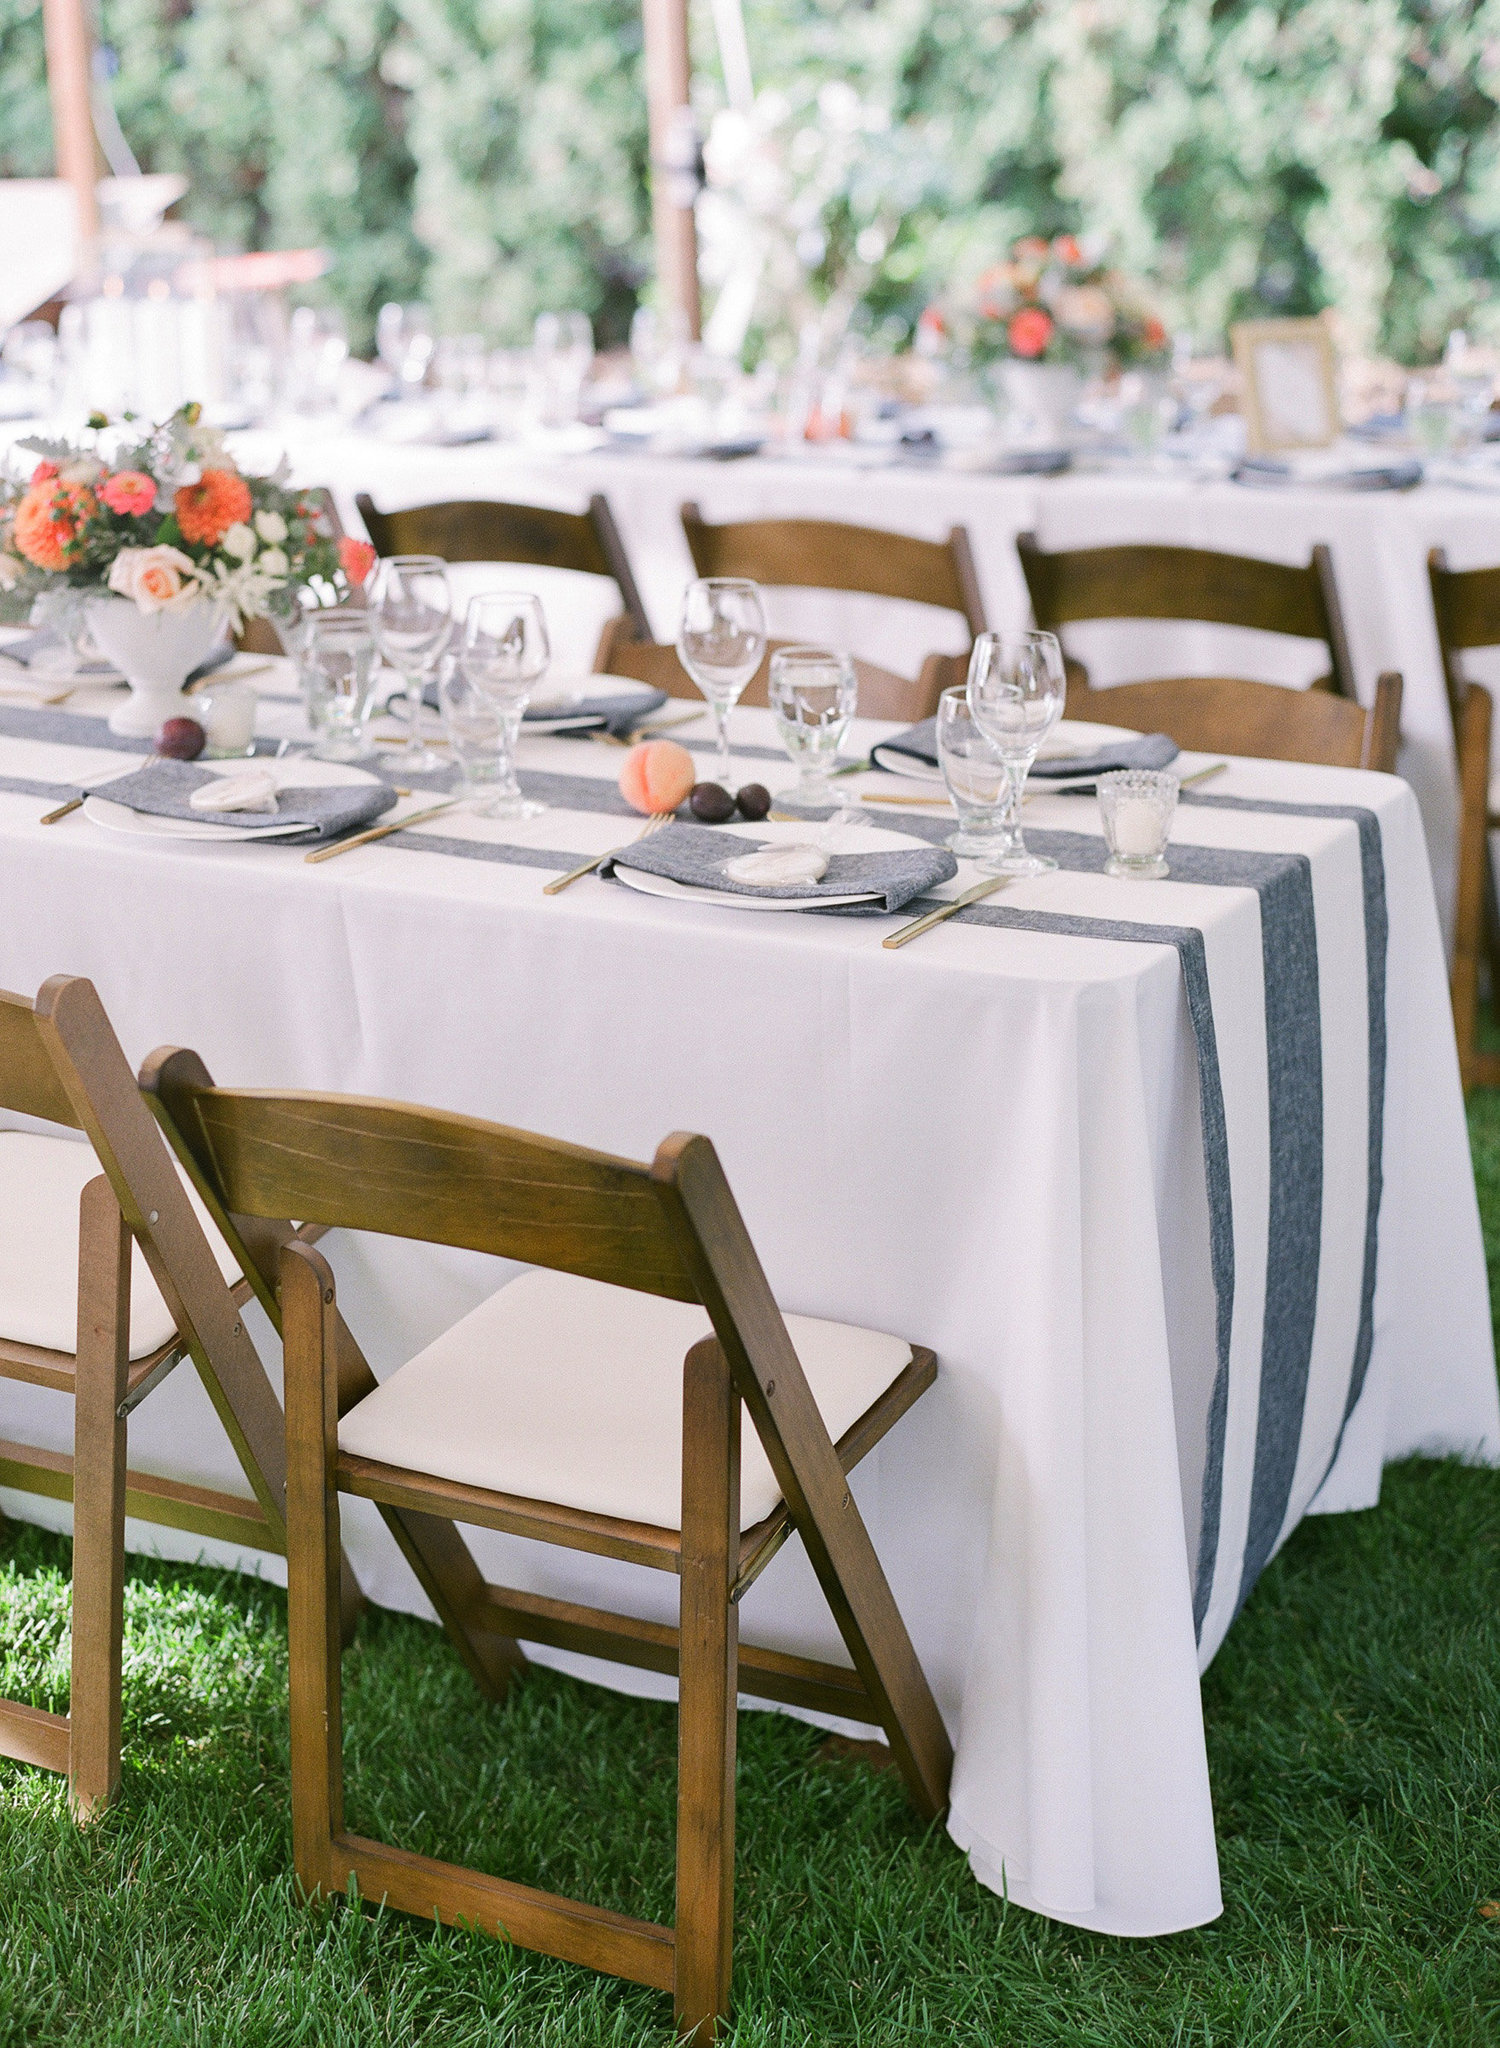 One of our past bride's is a big fan of stripes. She has multiple clothing items in this pattern, so we decided to make it a prominent design element. These runners from  Faire La Fete  are not only gorgeous, but instantly make the space feel personalized. Photography:  Blush Wedding Photography